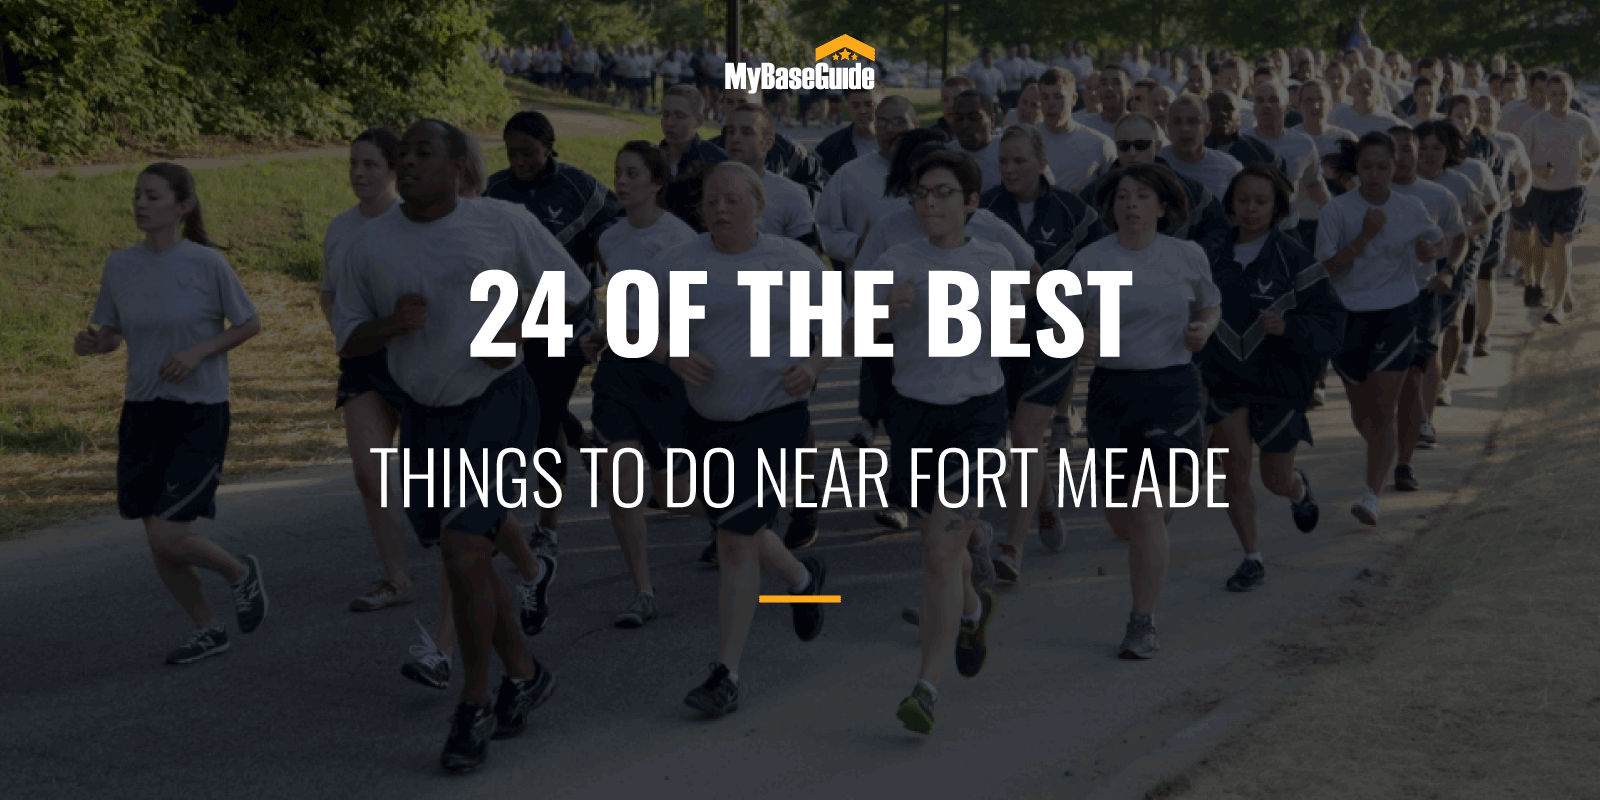 Fort Meade Best Things To Do